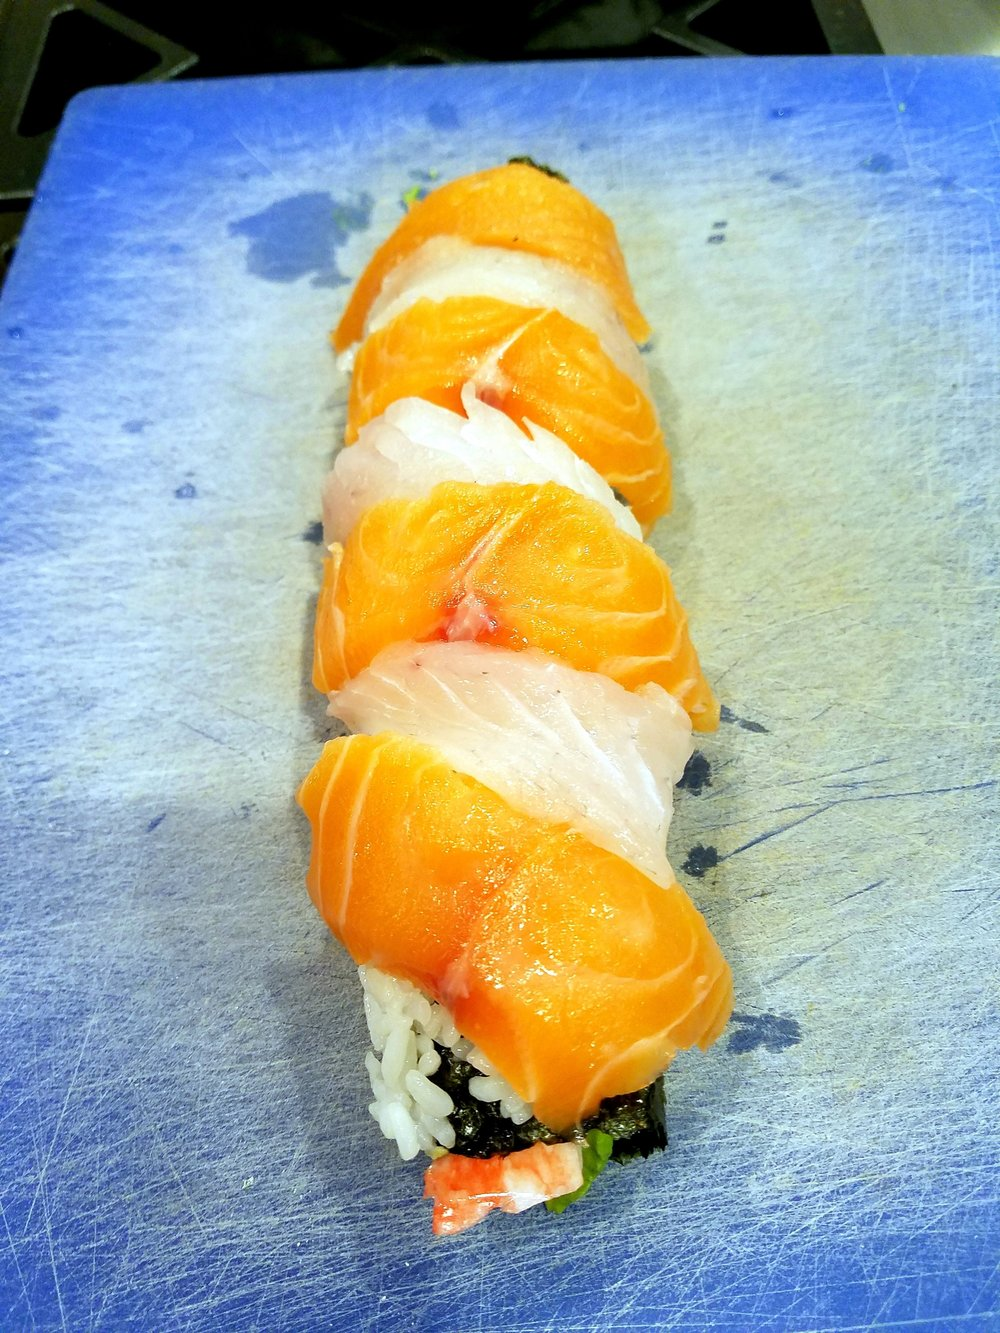 My very first attempt at making a roll.